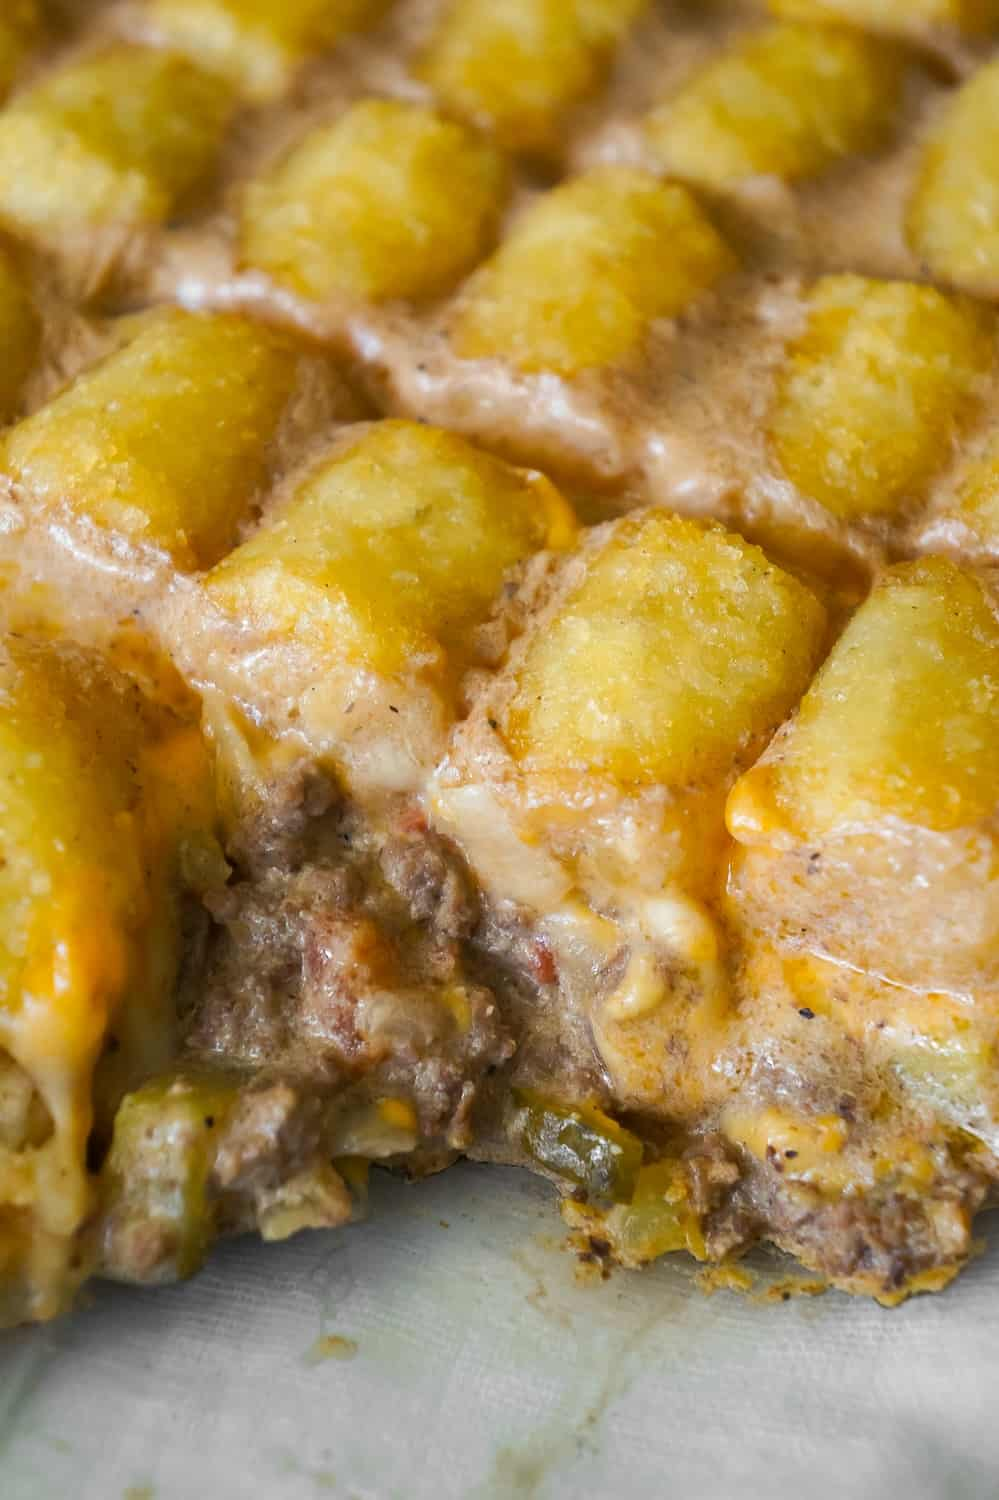 Hamburger Casserole with Tater Tots is an easy ground beef casserole recipe made with cream of mushroom soup, diced dill pickles and diced tomatoes, all topped with cheese and potatoes.